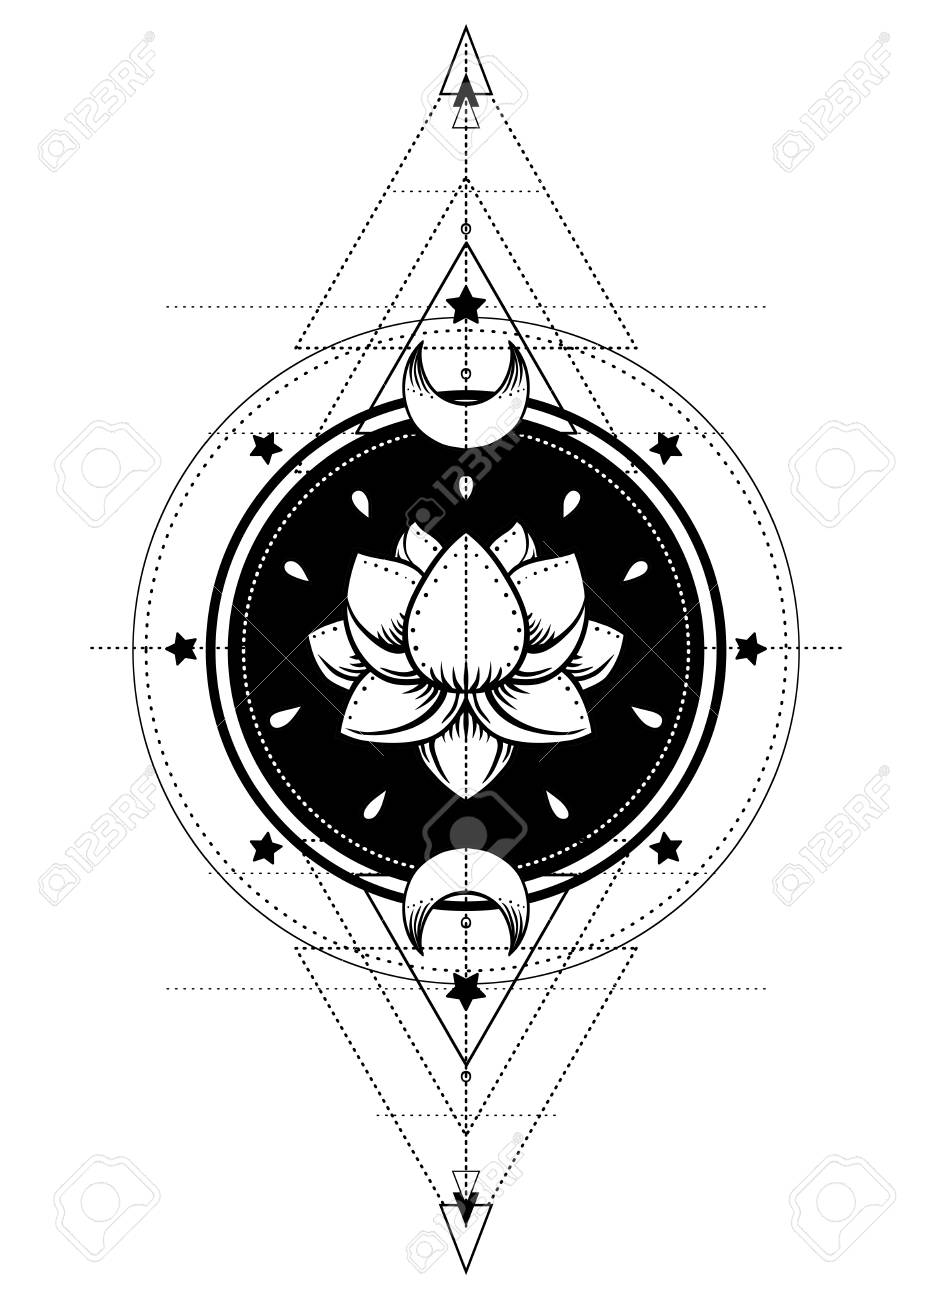 Harmony Tattoo Outline Wiring Diagrams Here39s Some Switch Symbols Switches Are Anything That Controls An Lotus And Sacred Geometry Ayurveda Symbol Of Balance Rh 123rf Com Name